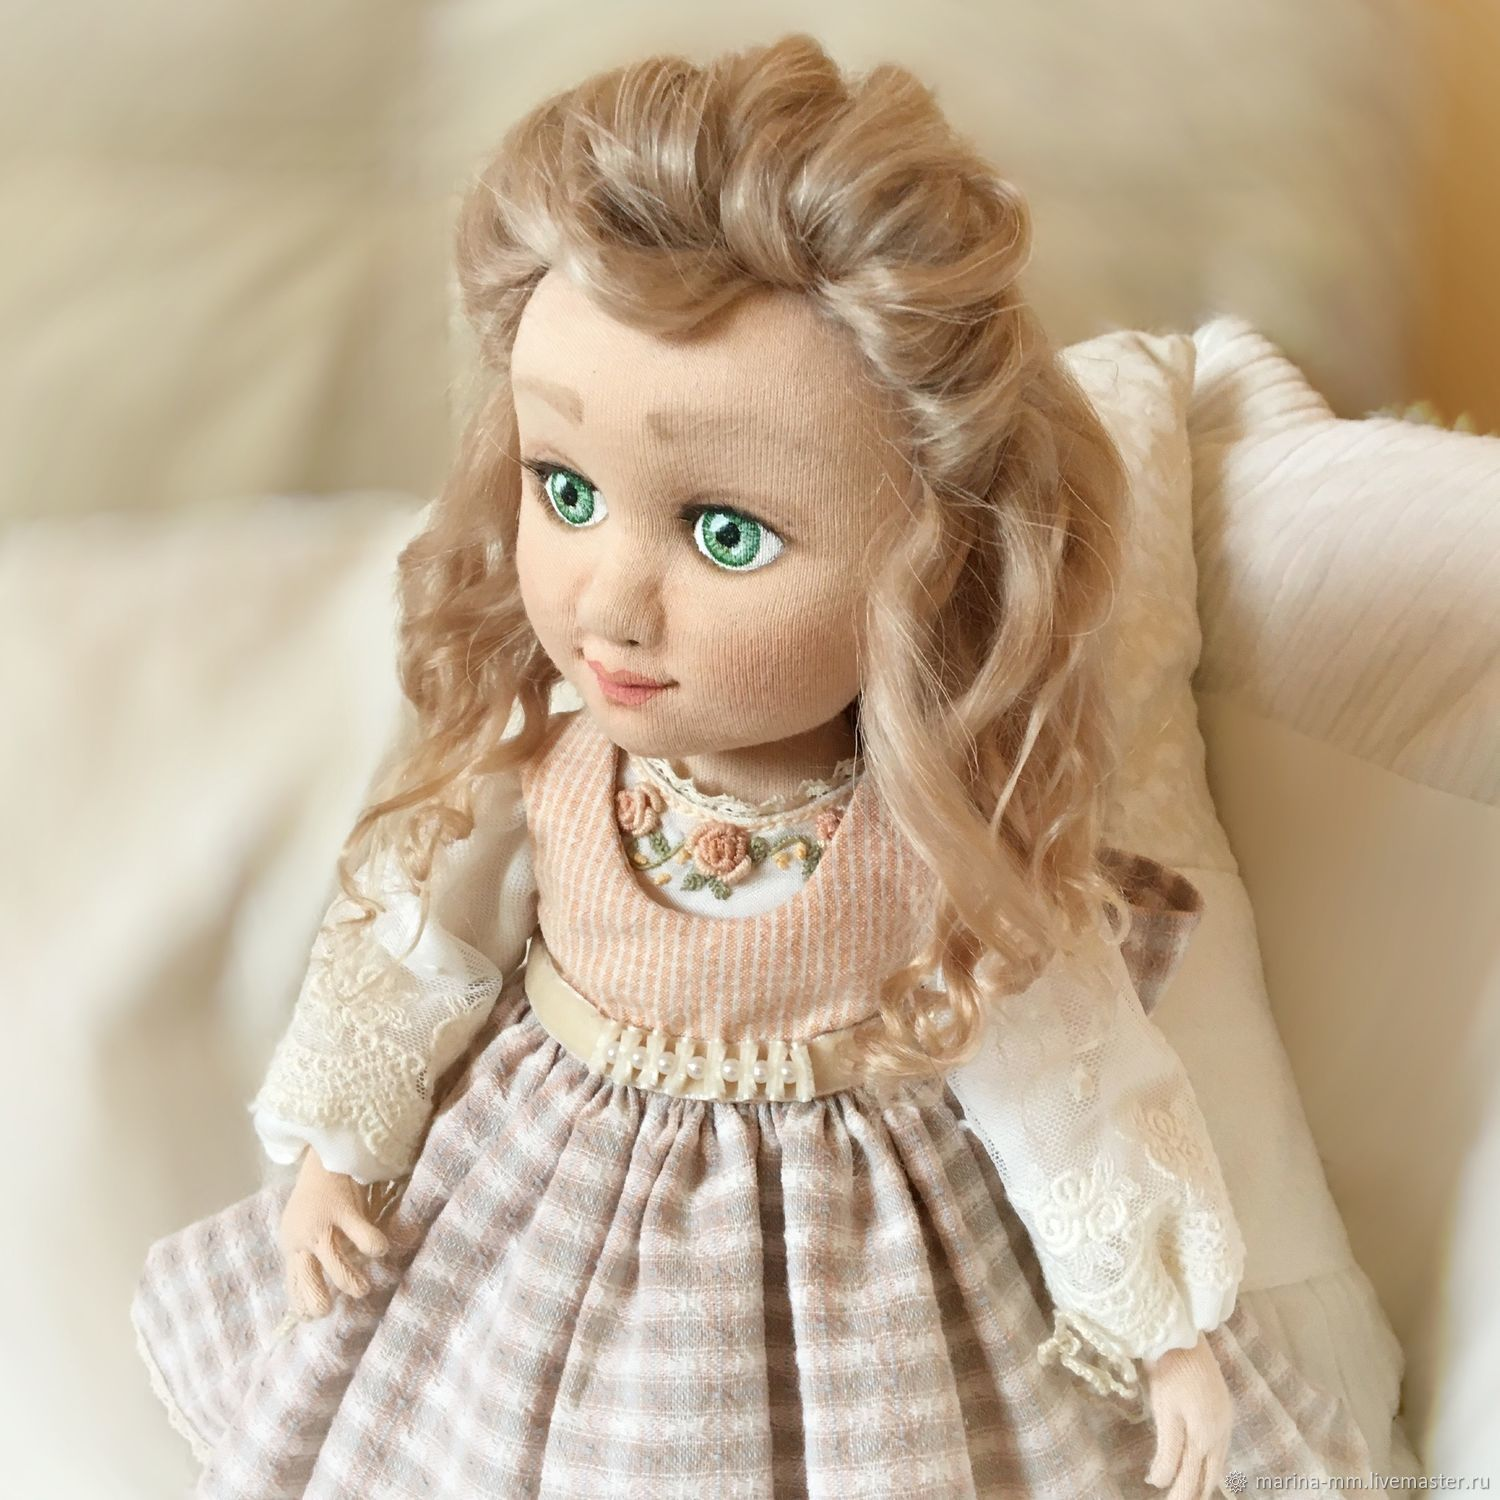 Textile interior doll, Dolls, Moscow,  Фото №1